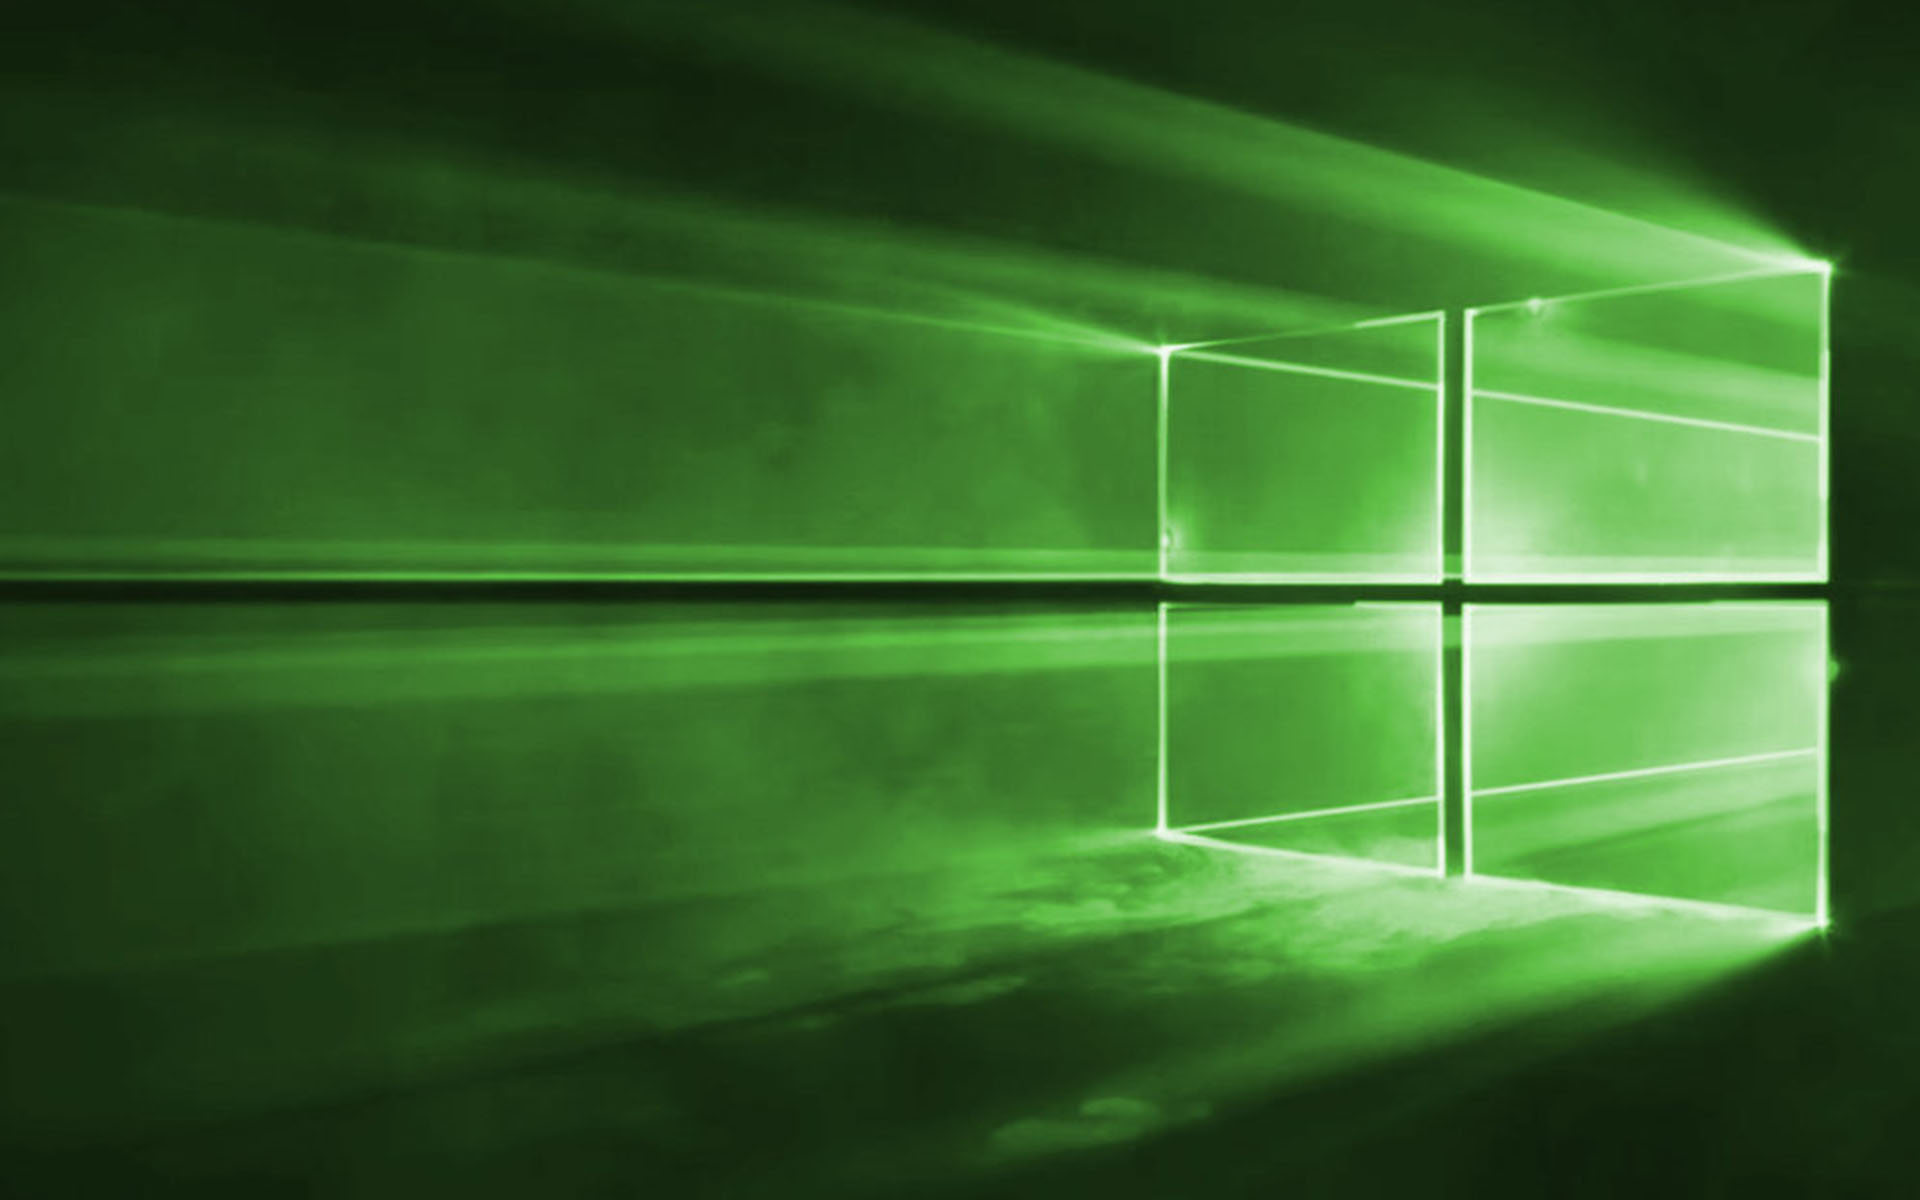 46 Windows 10 Hd Wallpaper 1920x1080 On Wallpapersafari